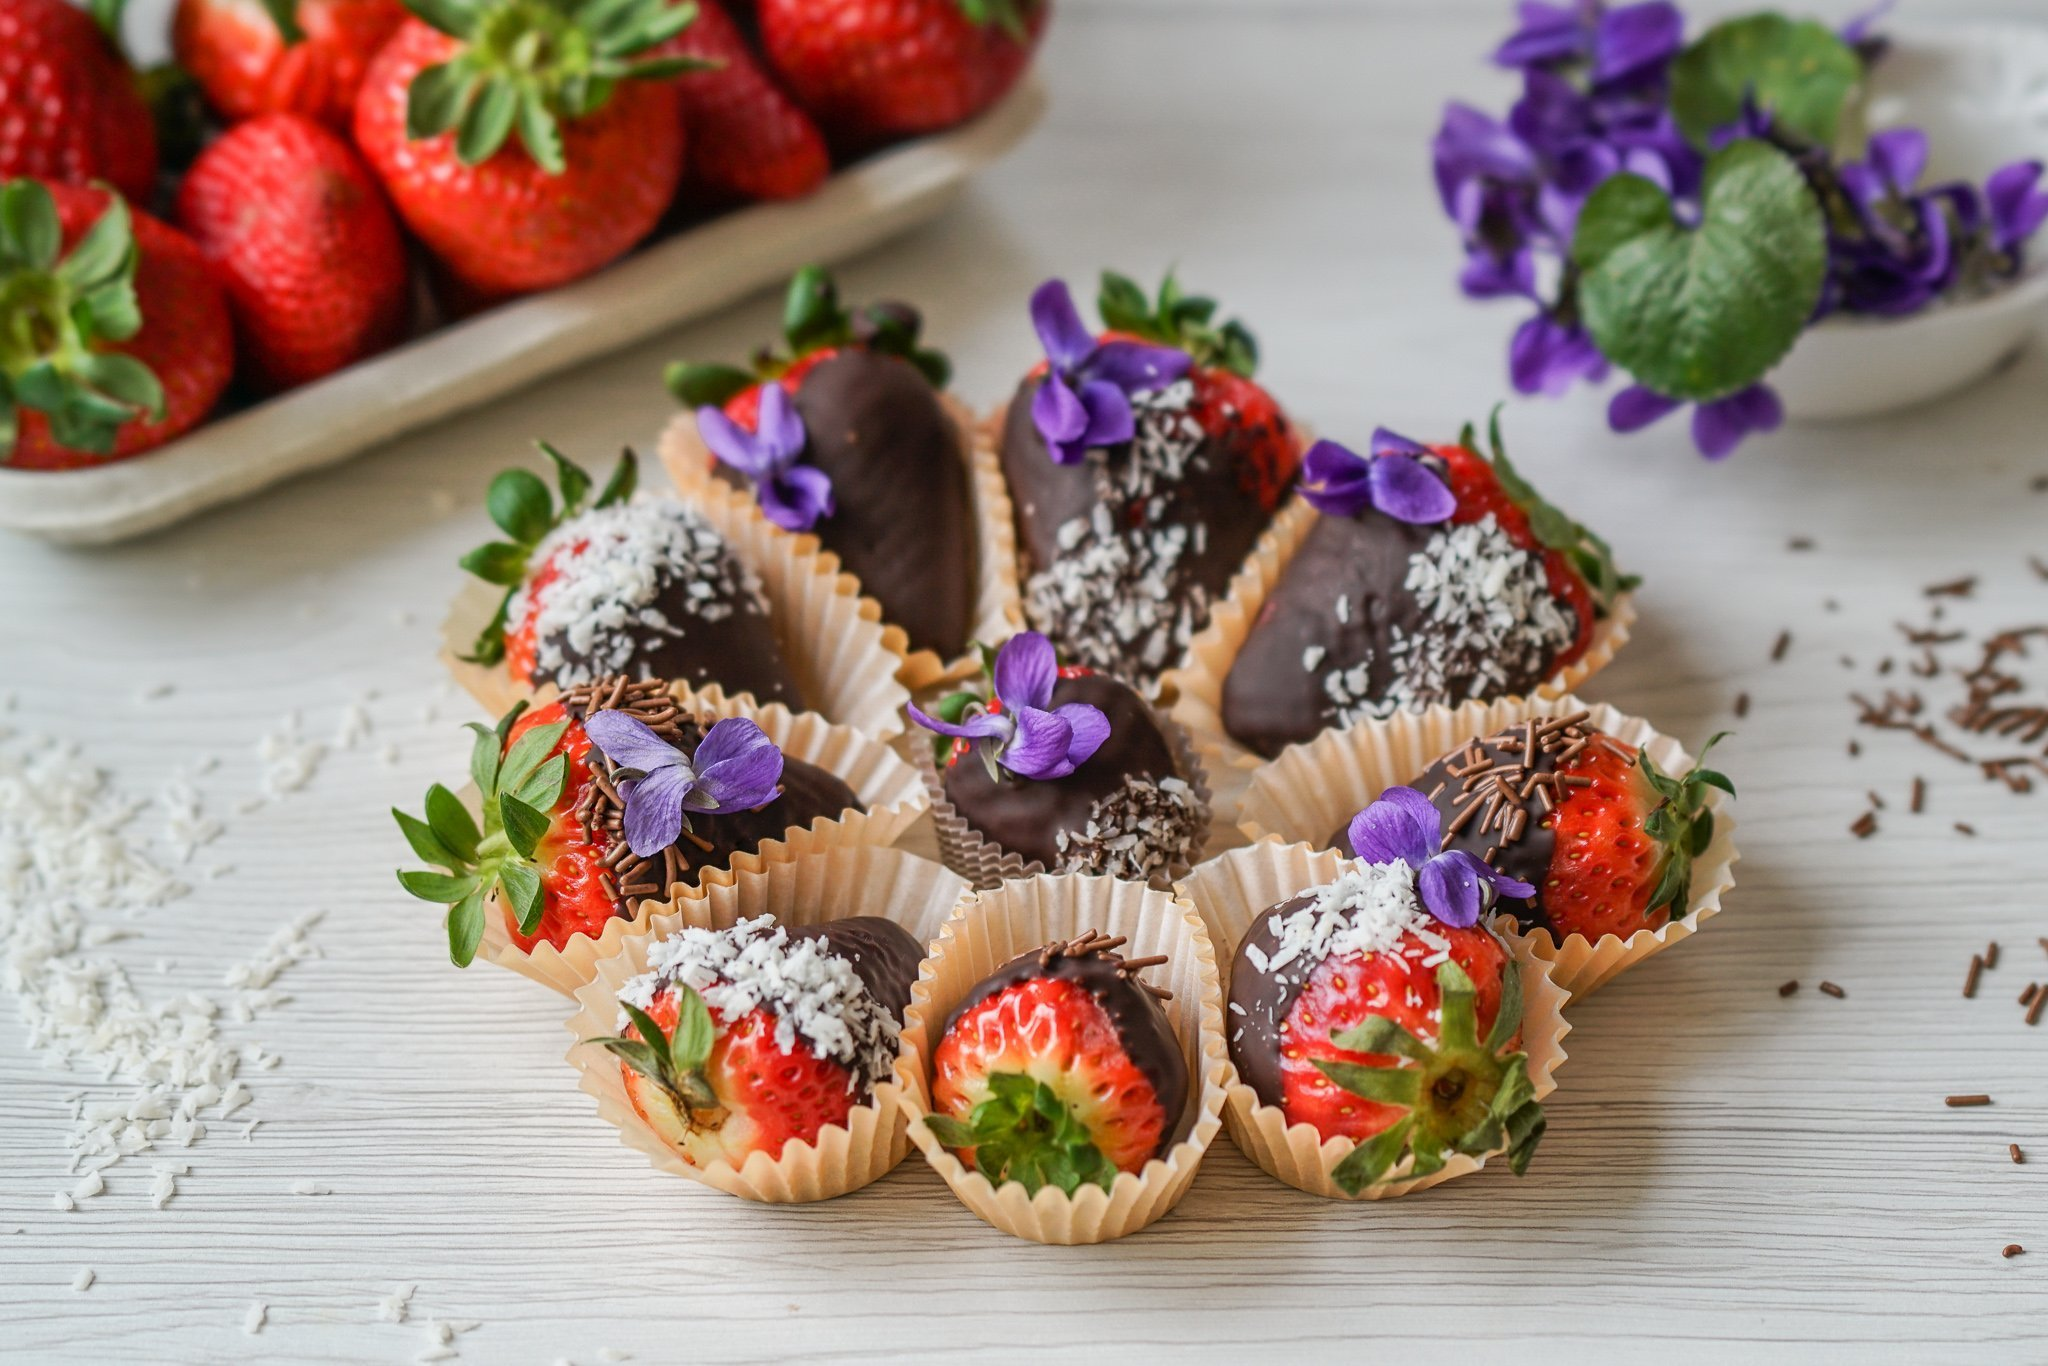 Easy Paleo Chocolate Covered Strawberries (GF & DF)